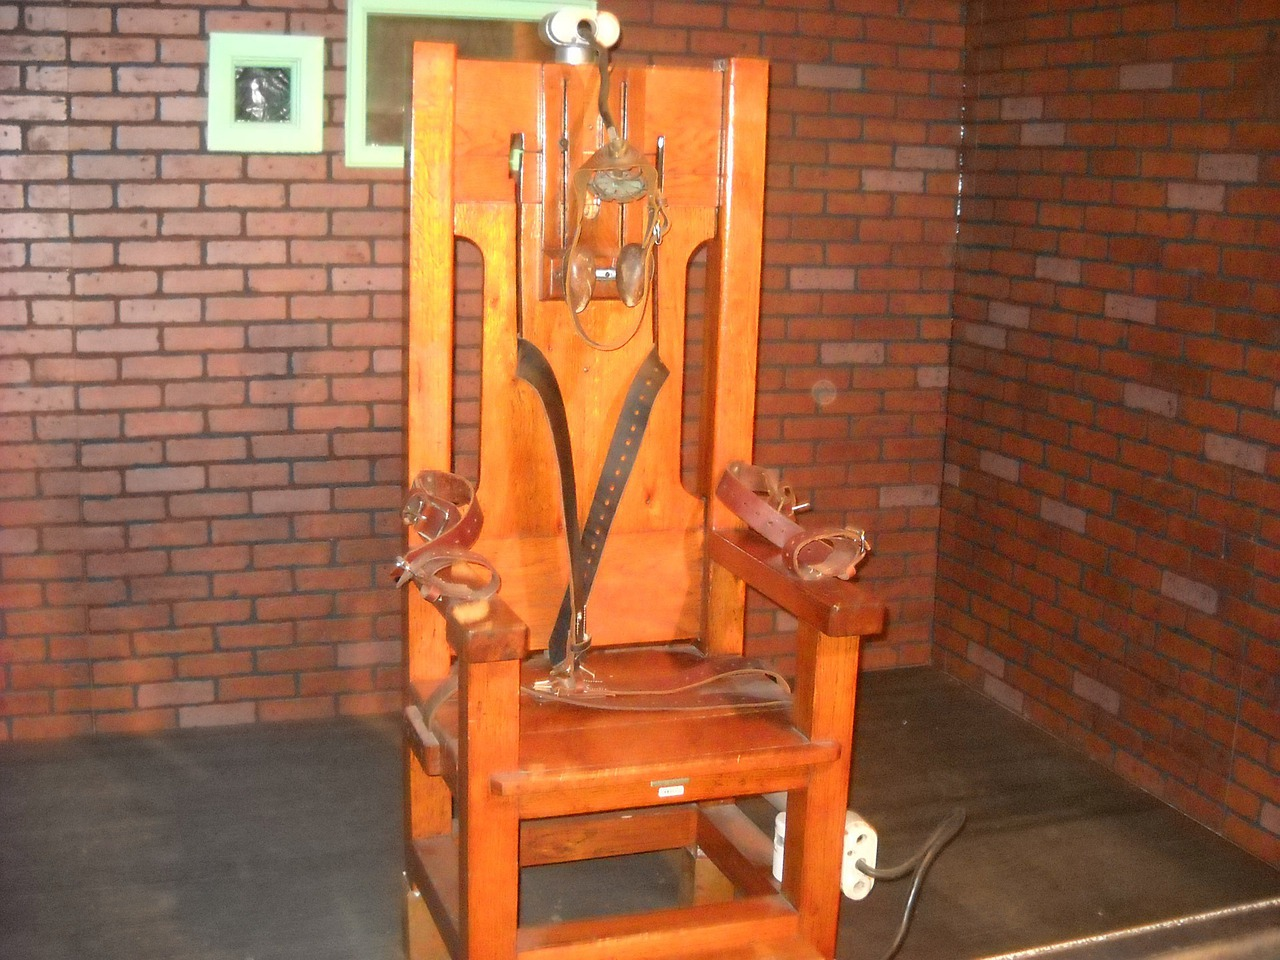 The electric chair was invented by a dentist